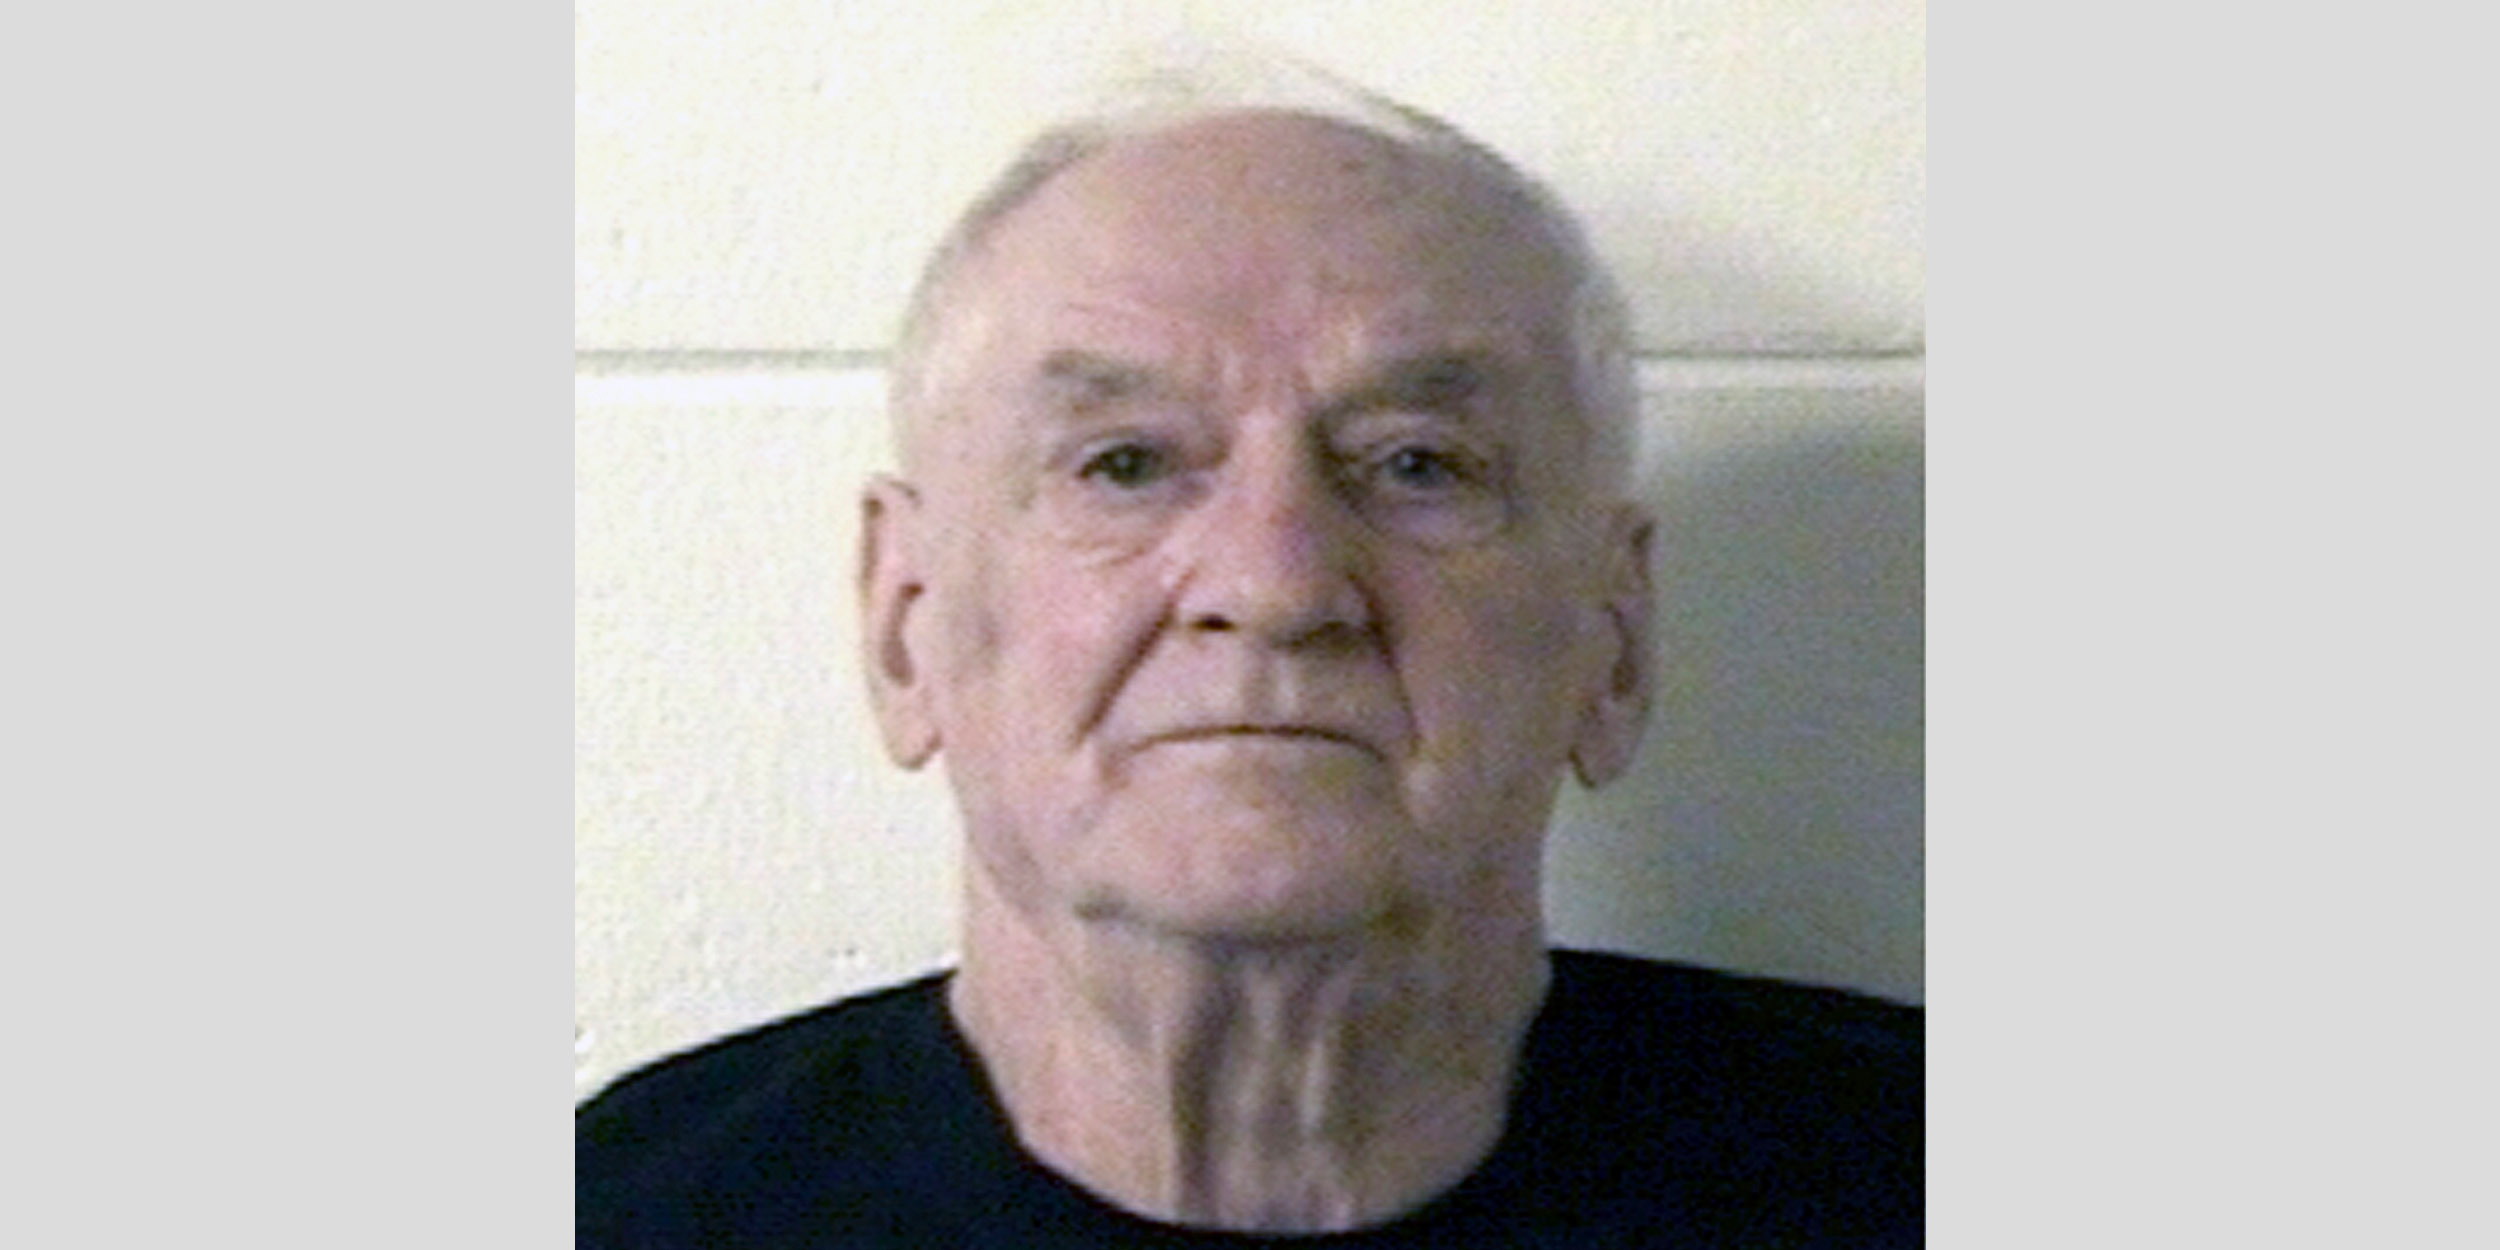 Man, 84, gets consecutive life sentences in 1976 double homicide